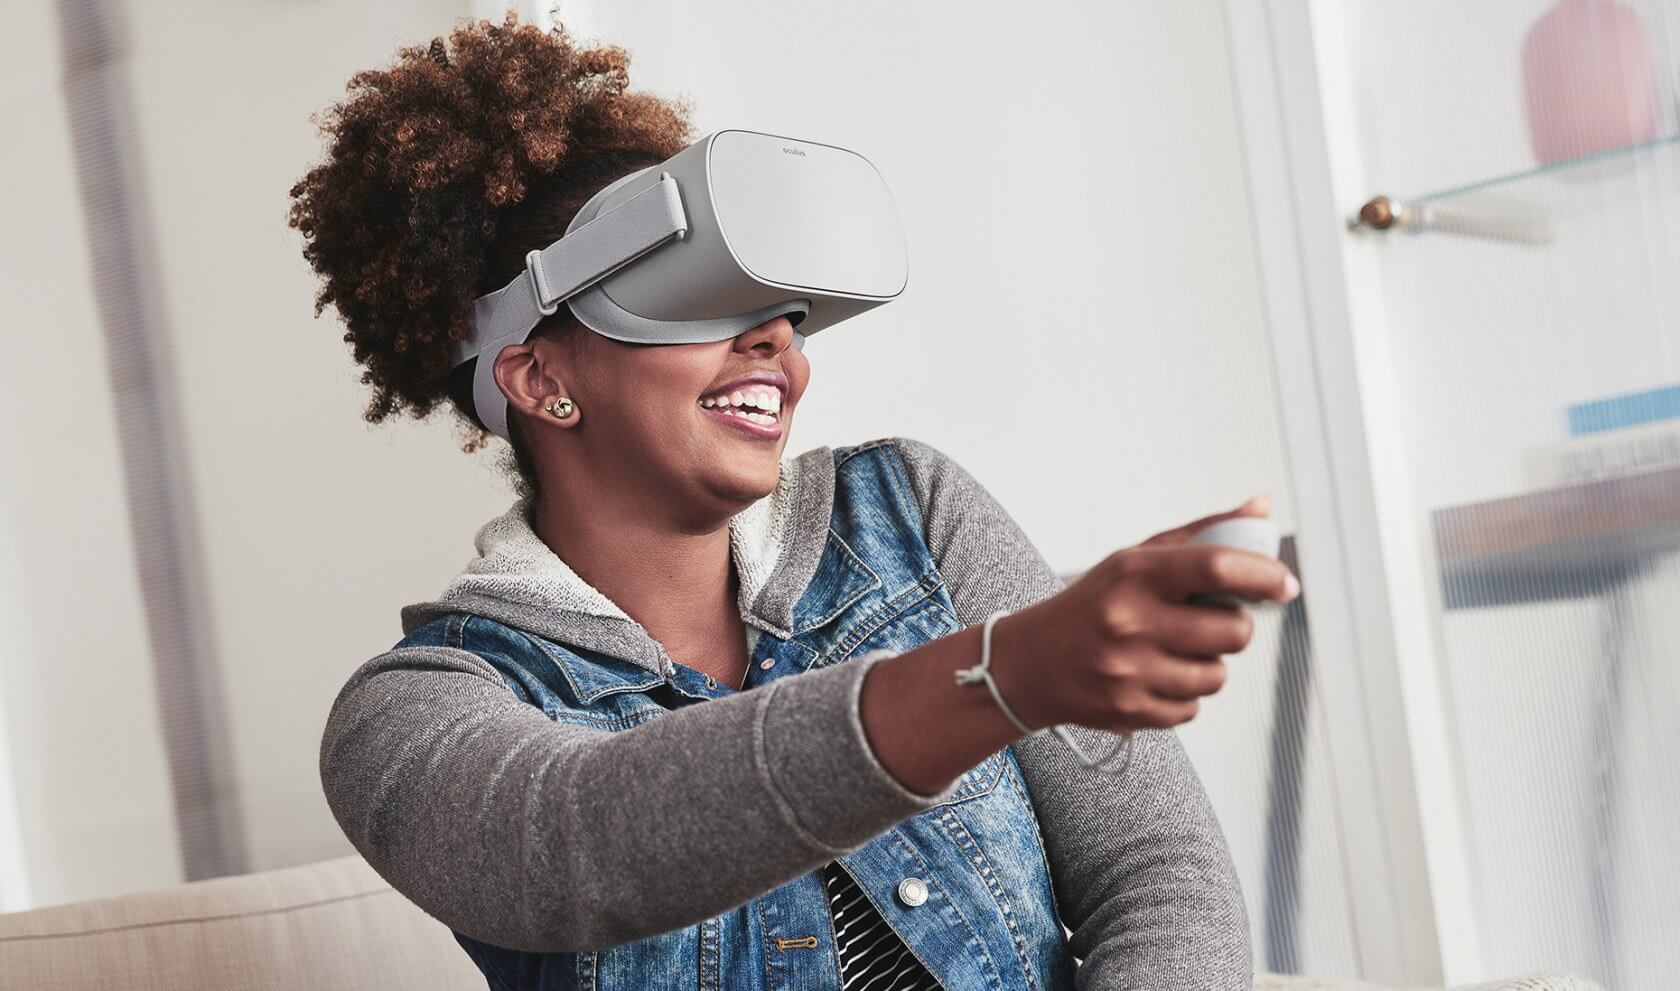 The Oculus Go's price has been slashed to $150